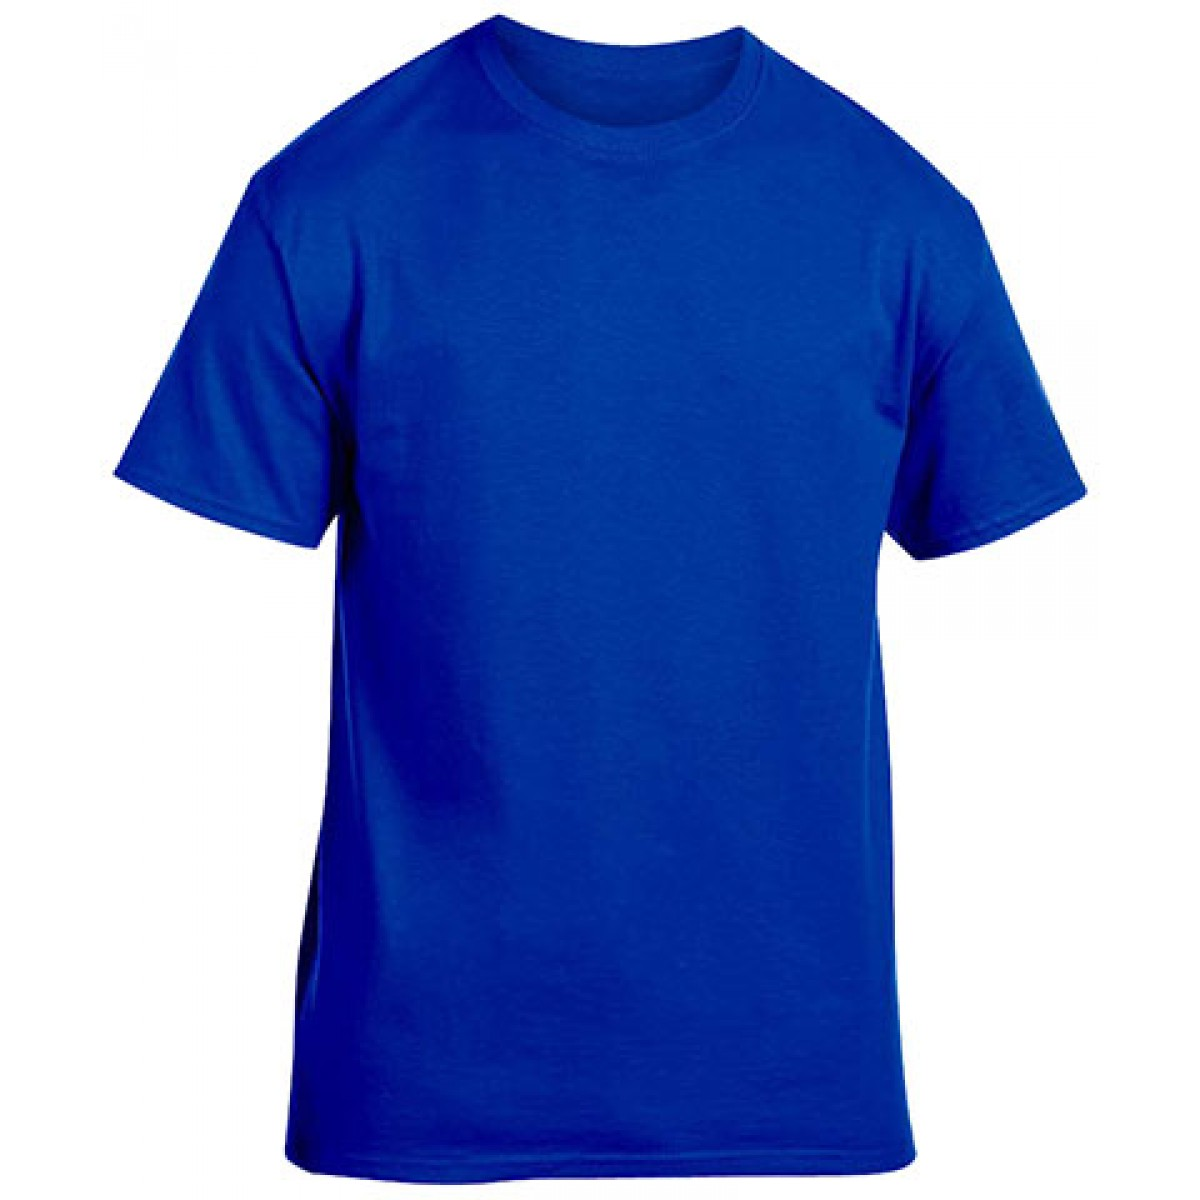 Heavy Cotton Activewear T-Shirt-Royal Blue-3XL